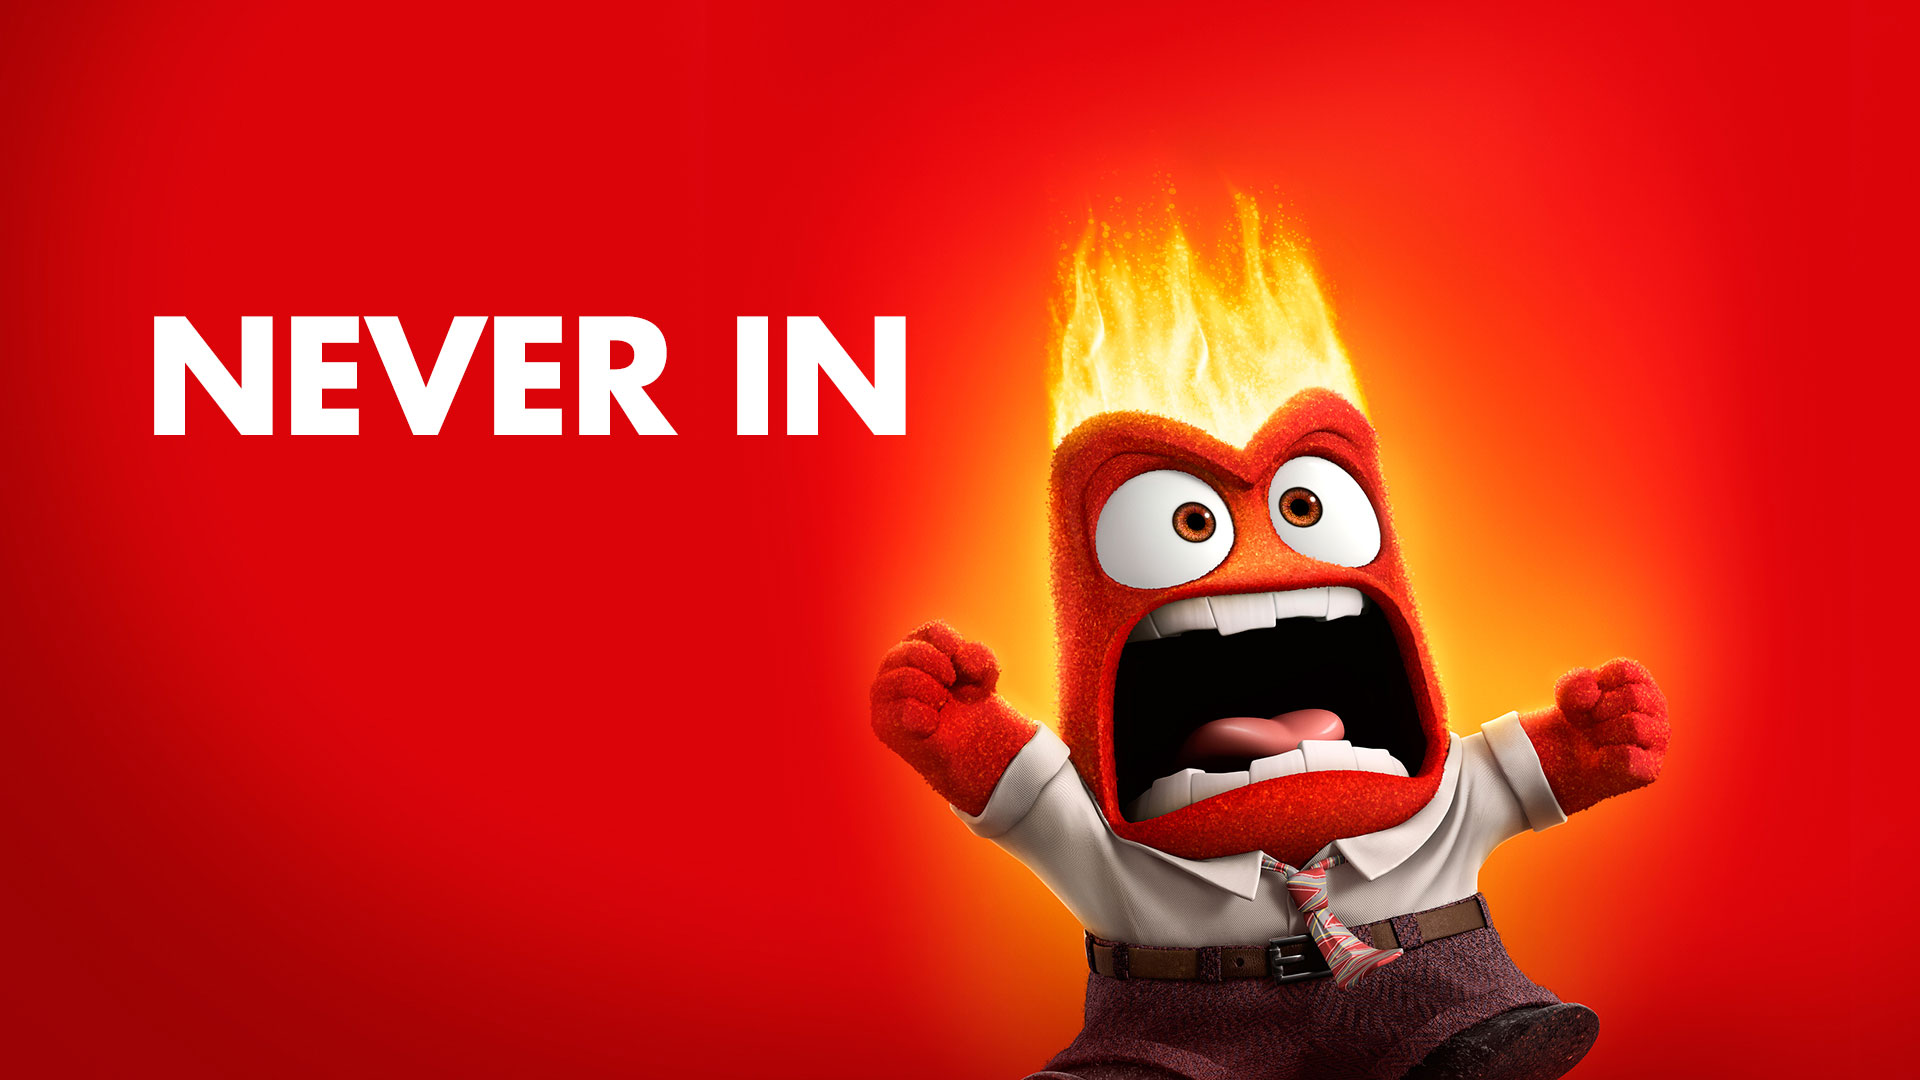 Movie Inside Out 2015 Desktop Backgrounds iPhone 6 Wallpapers HD 1920x1080